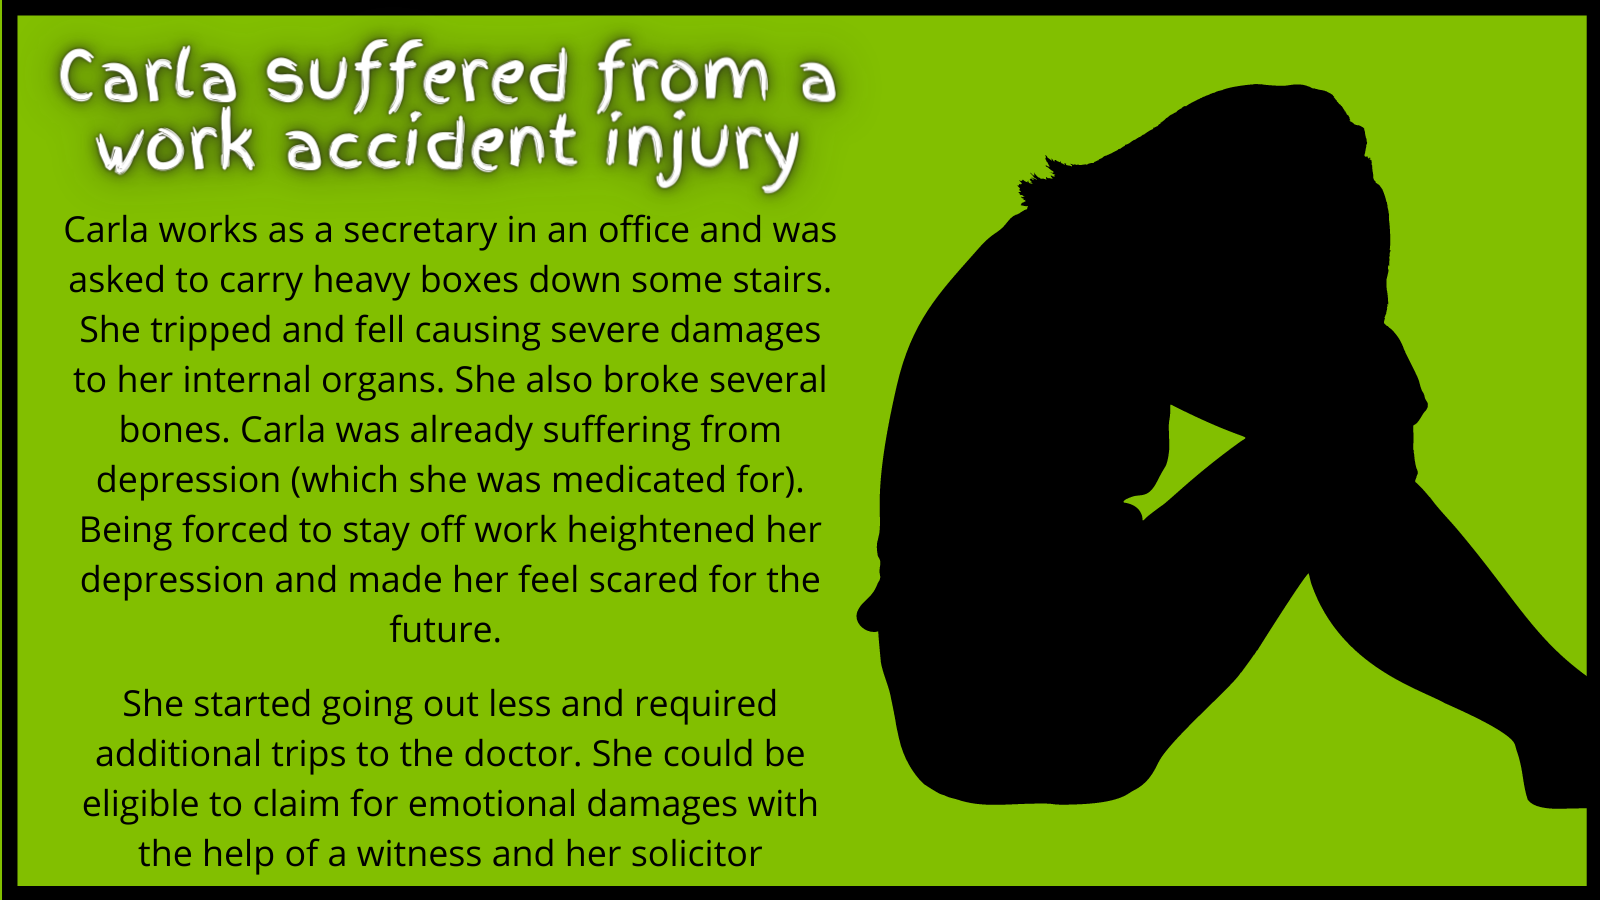 Work Accident Injury Case Study for Emotional Damages